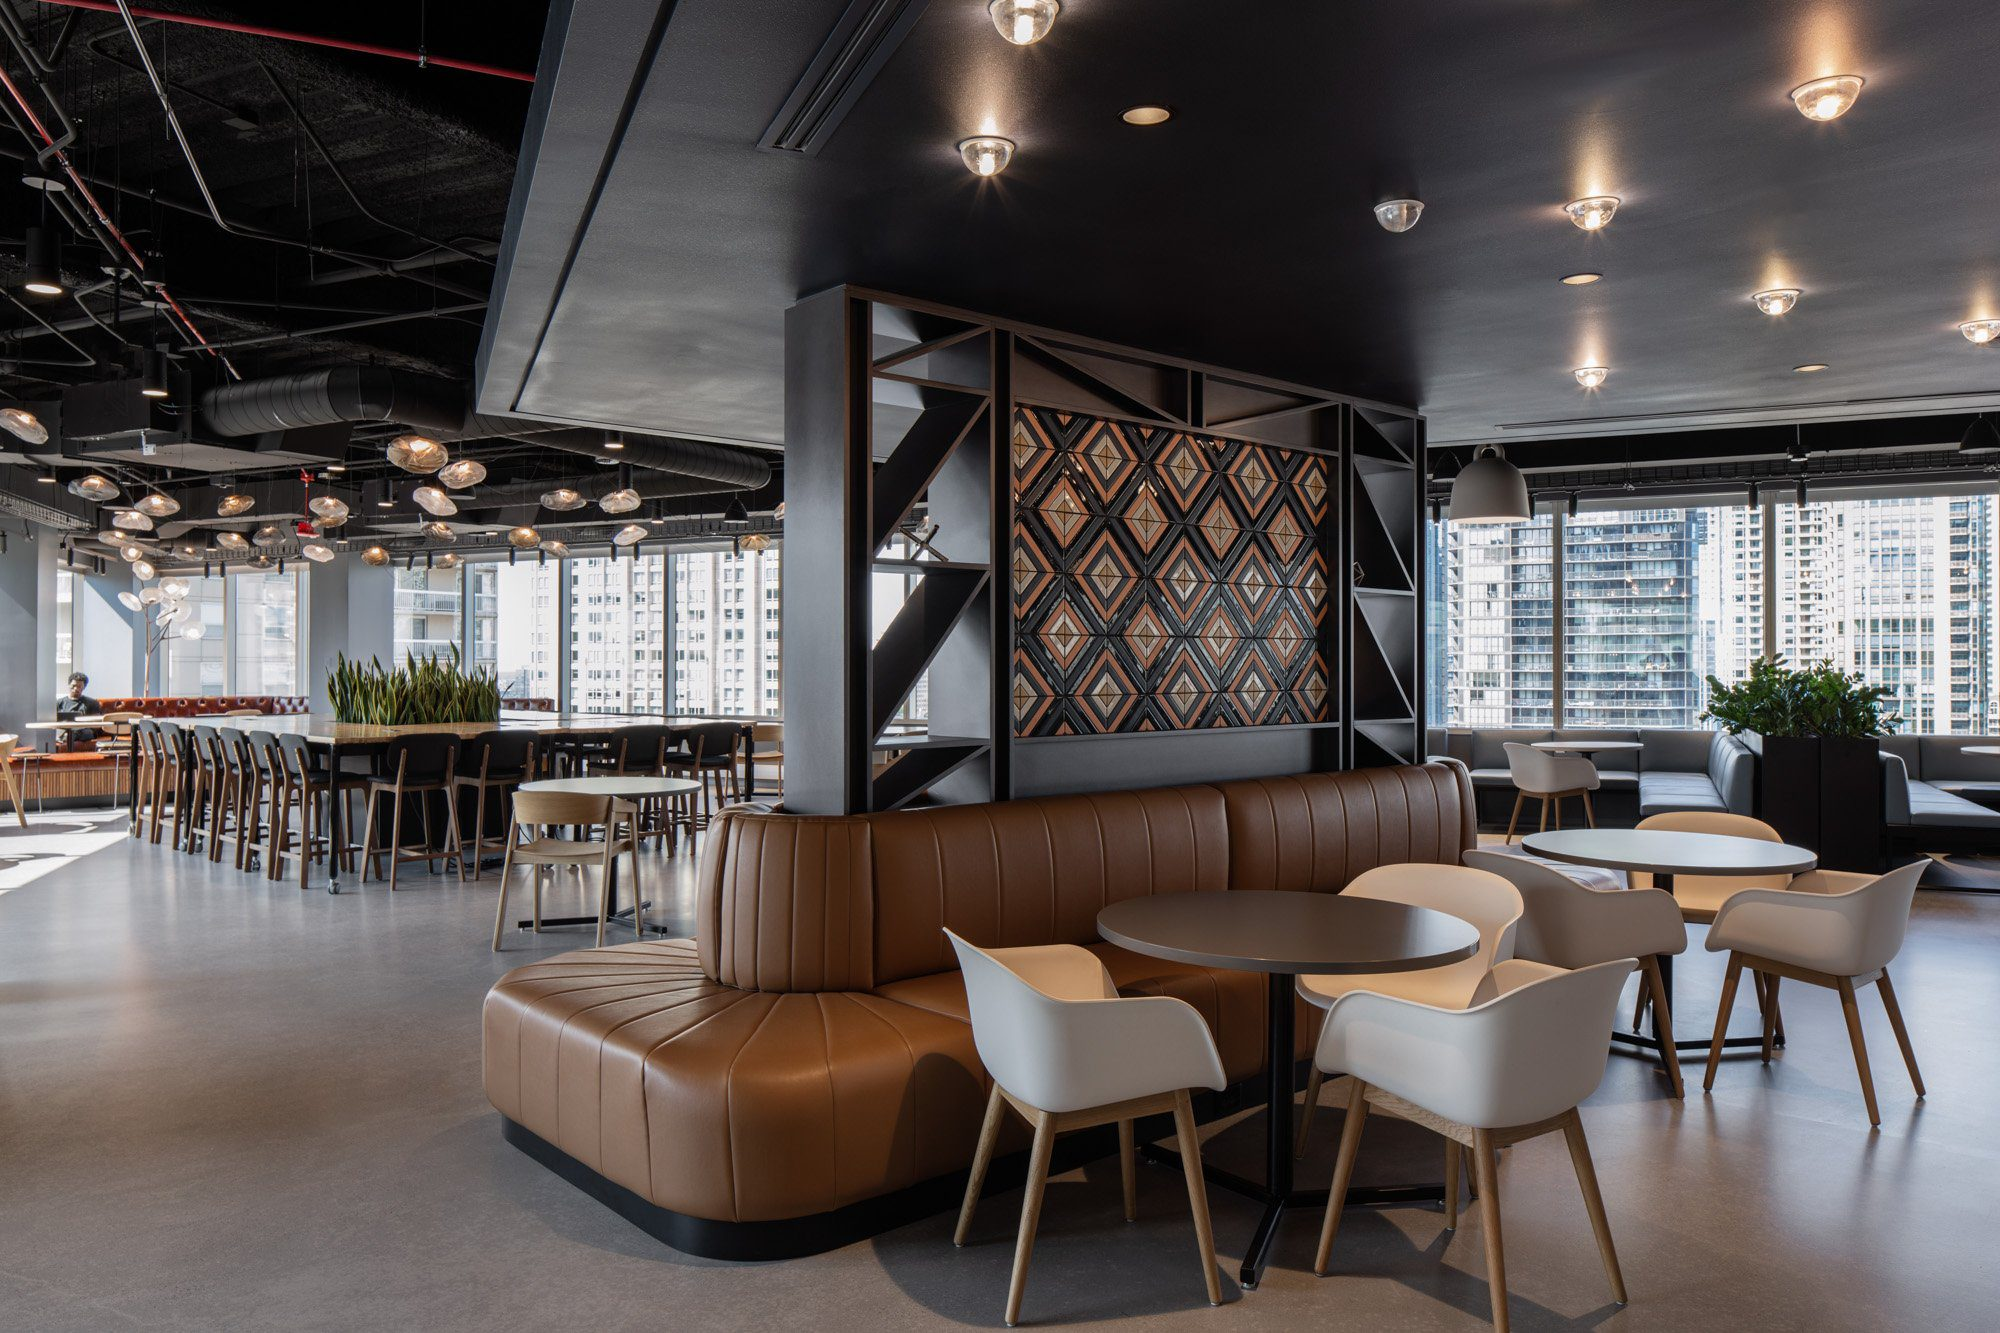 dentsu chicago, studios architecture, clune construction, loop lighting, architecture photography